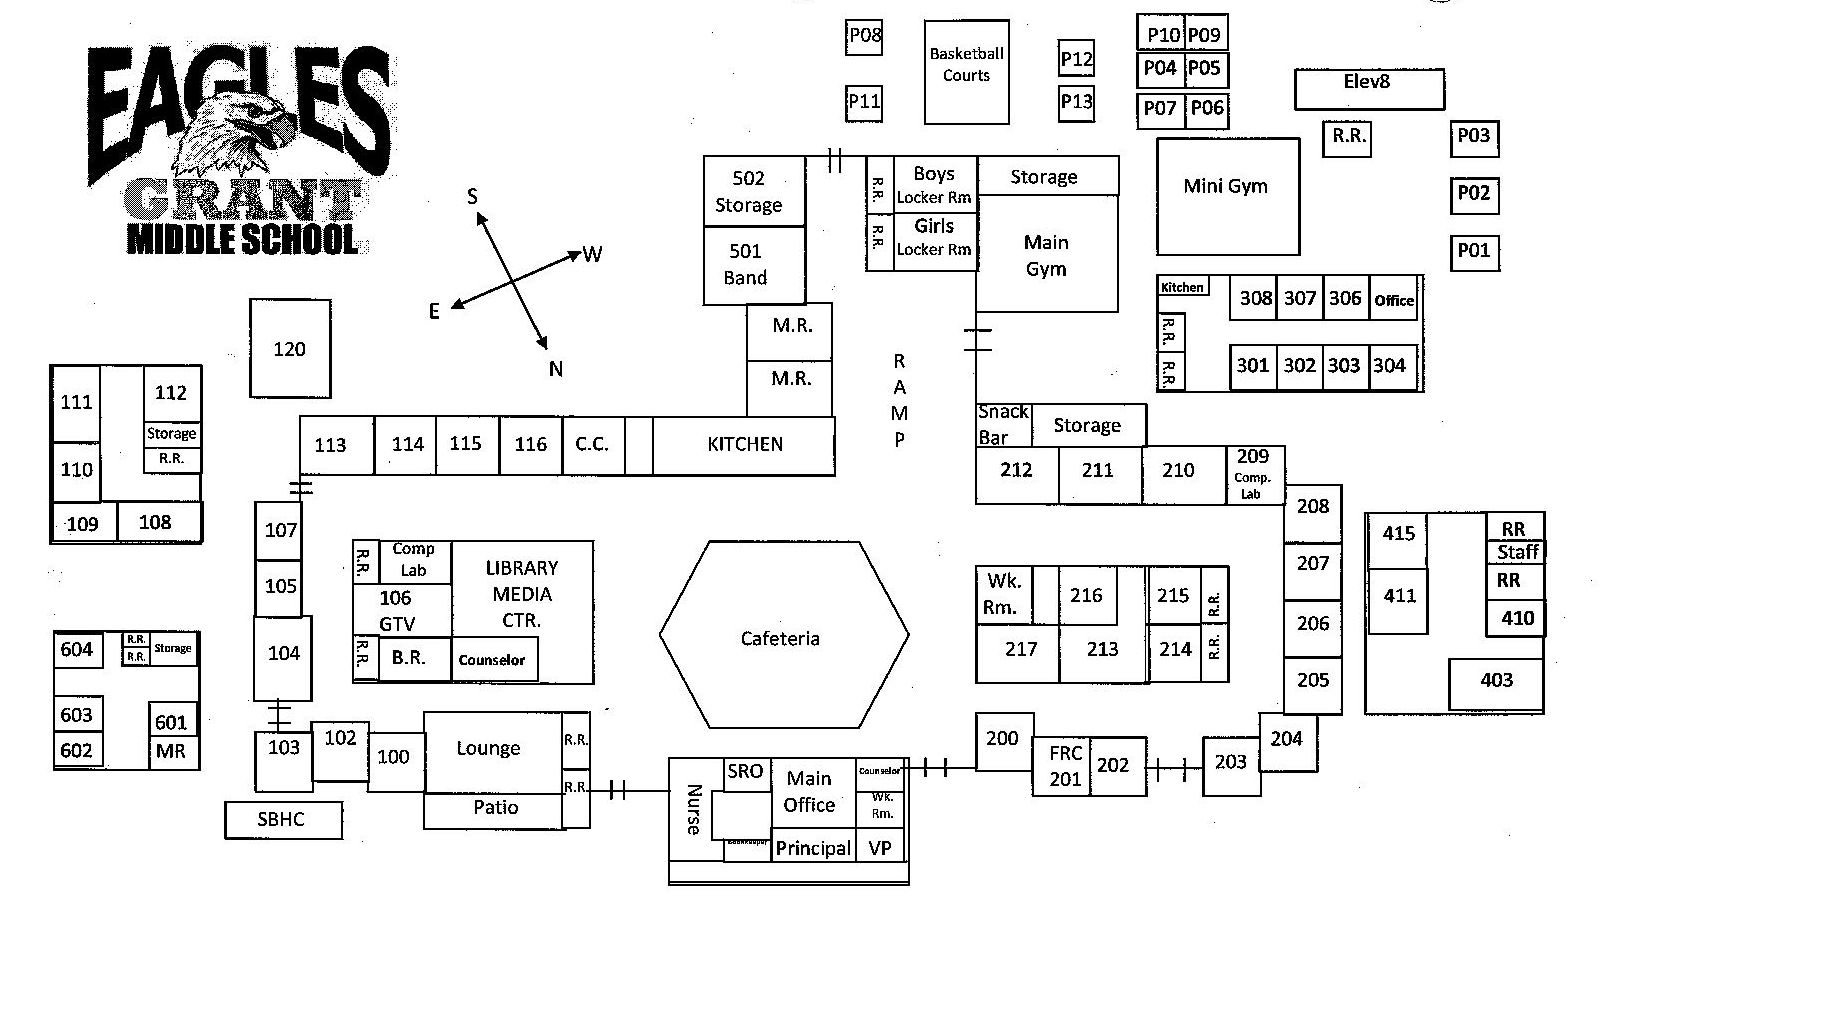 Grant Middle School campus map